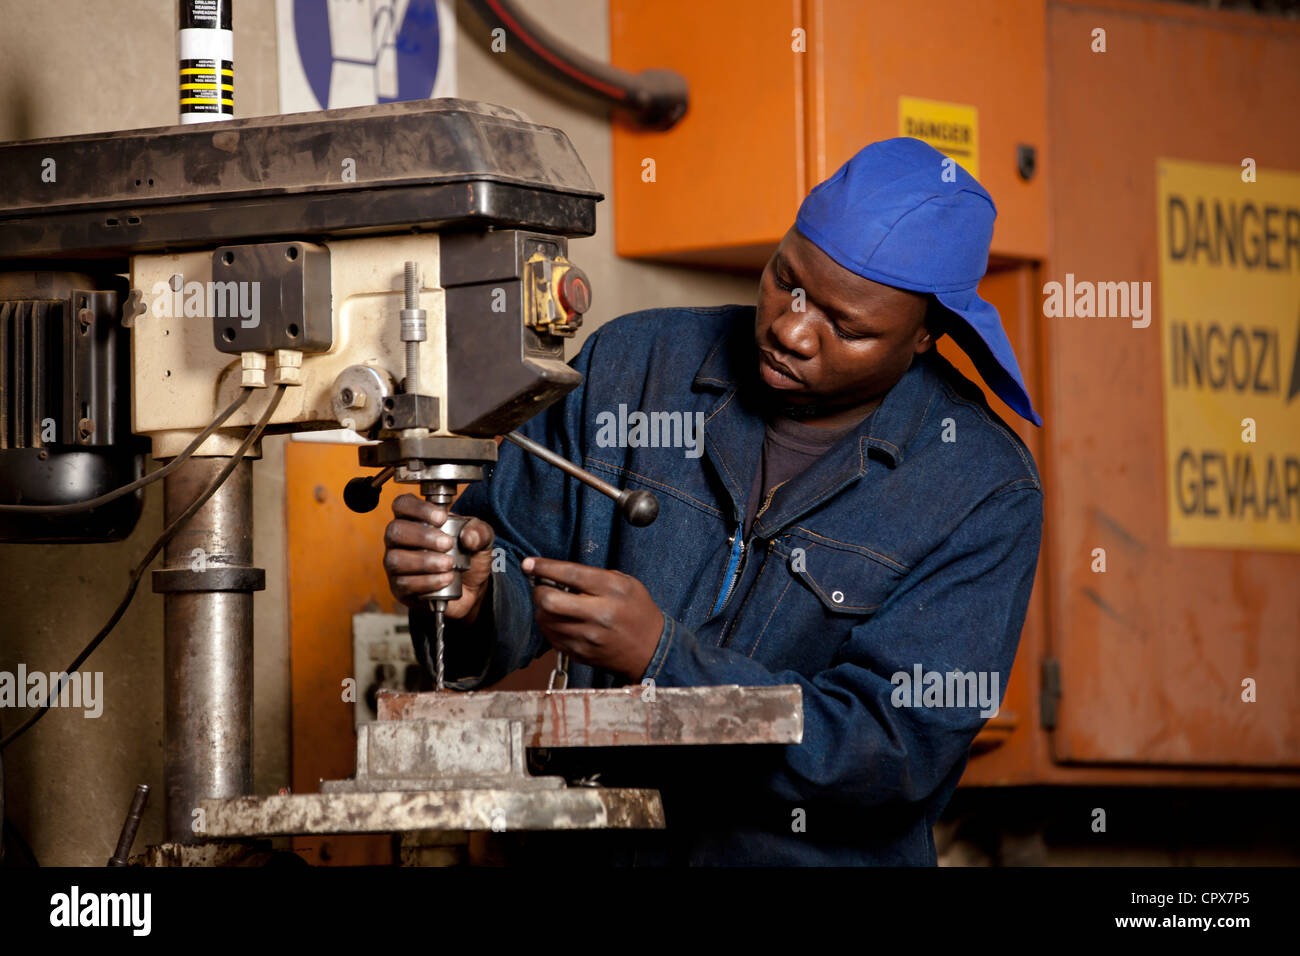 Factory worker operating drill press in magnet factory, Gauteng Stock Photo, Royalty Free Image: 48520029 - Alamy